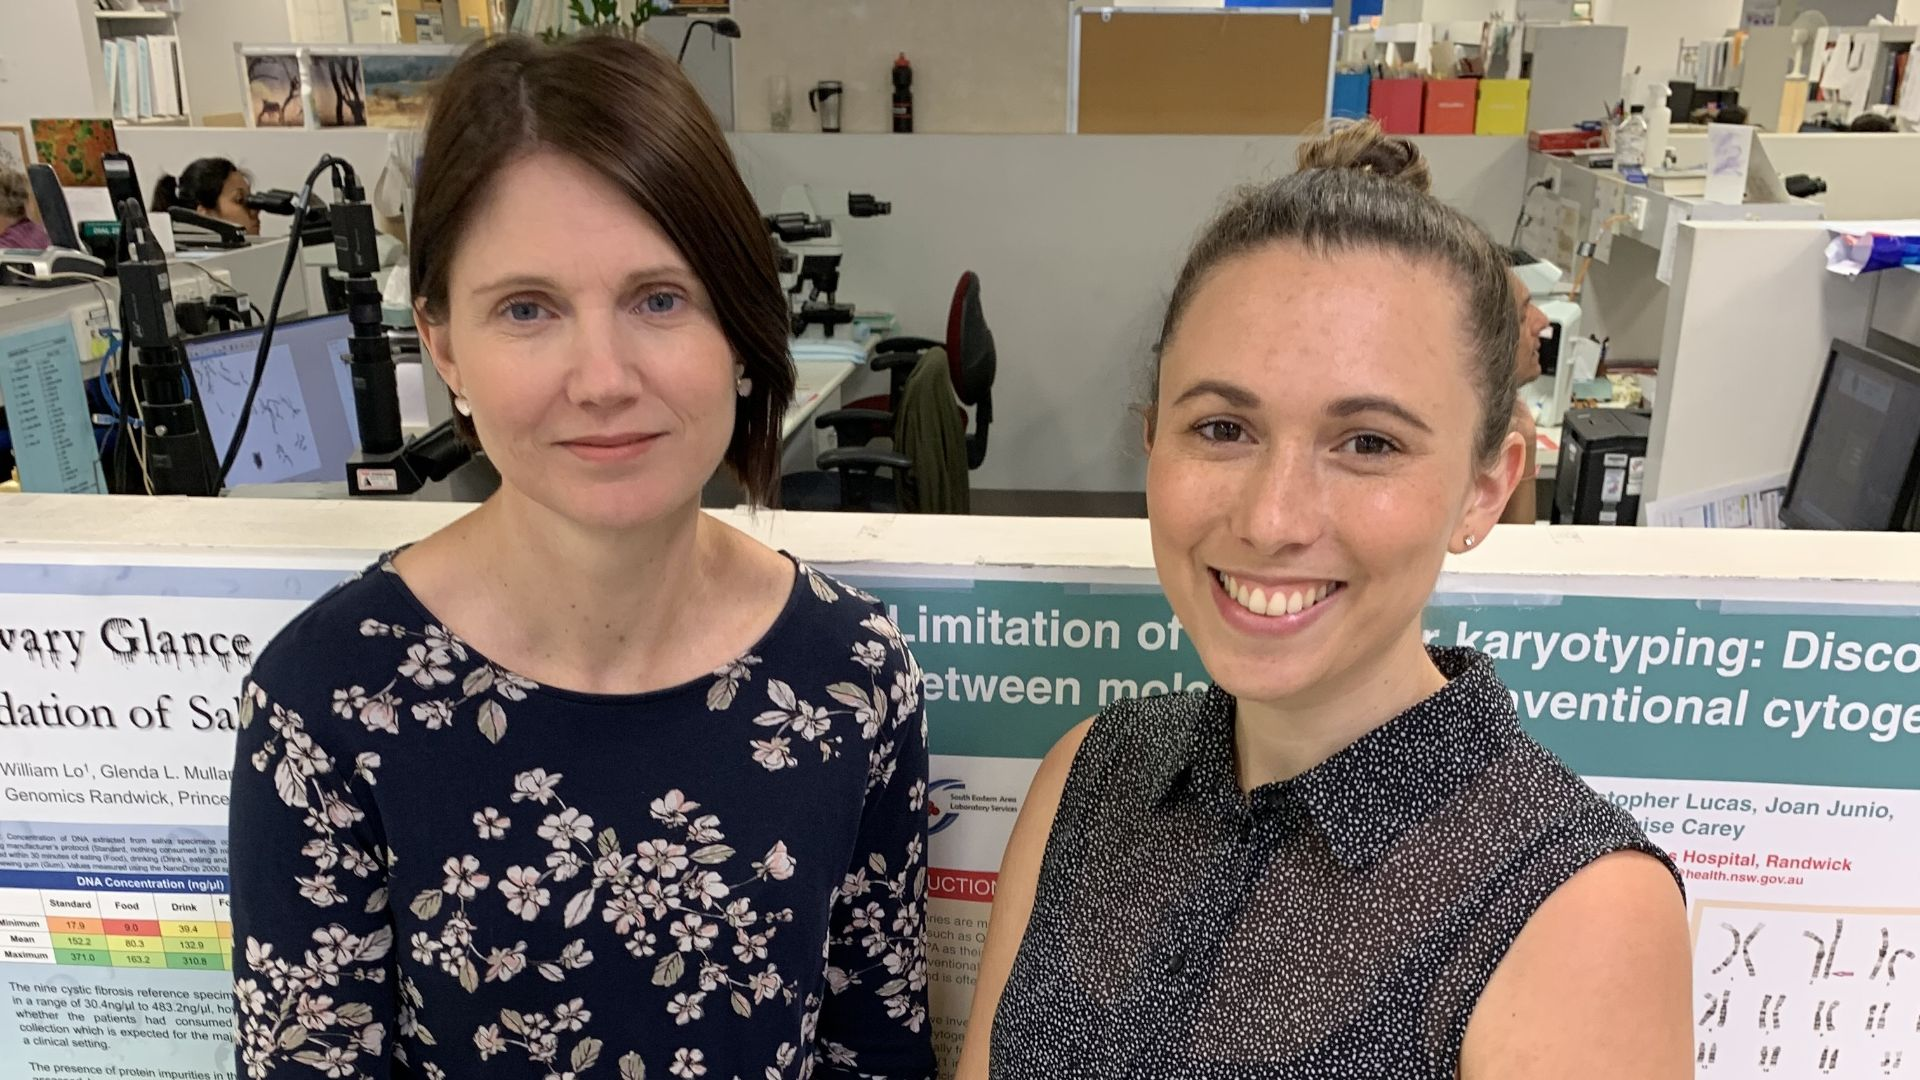 Charles Sturt alumna mentors recent graduate and offers first full-time scientist role